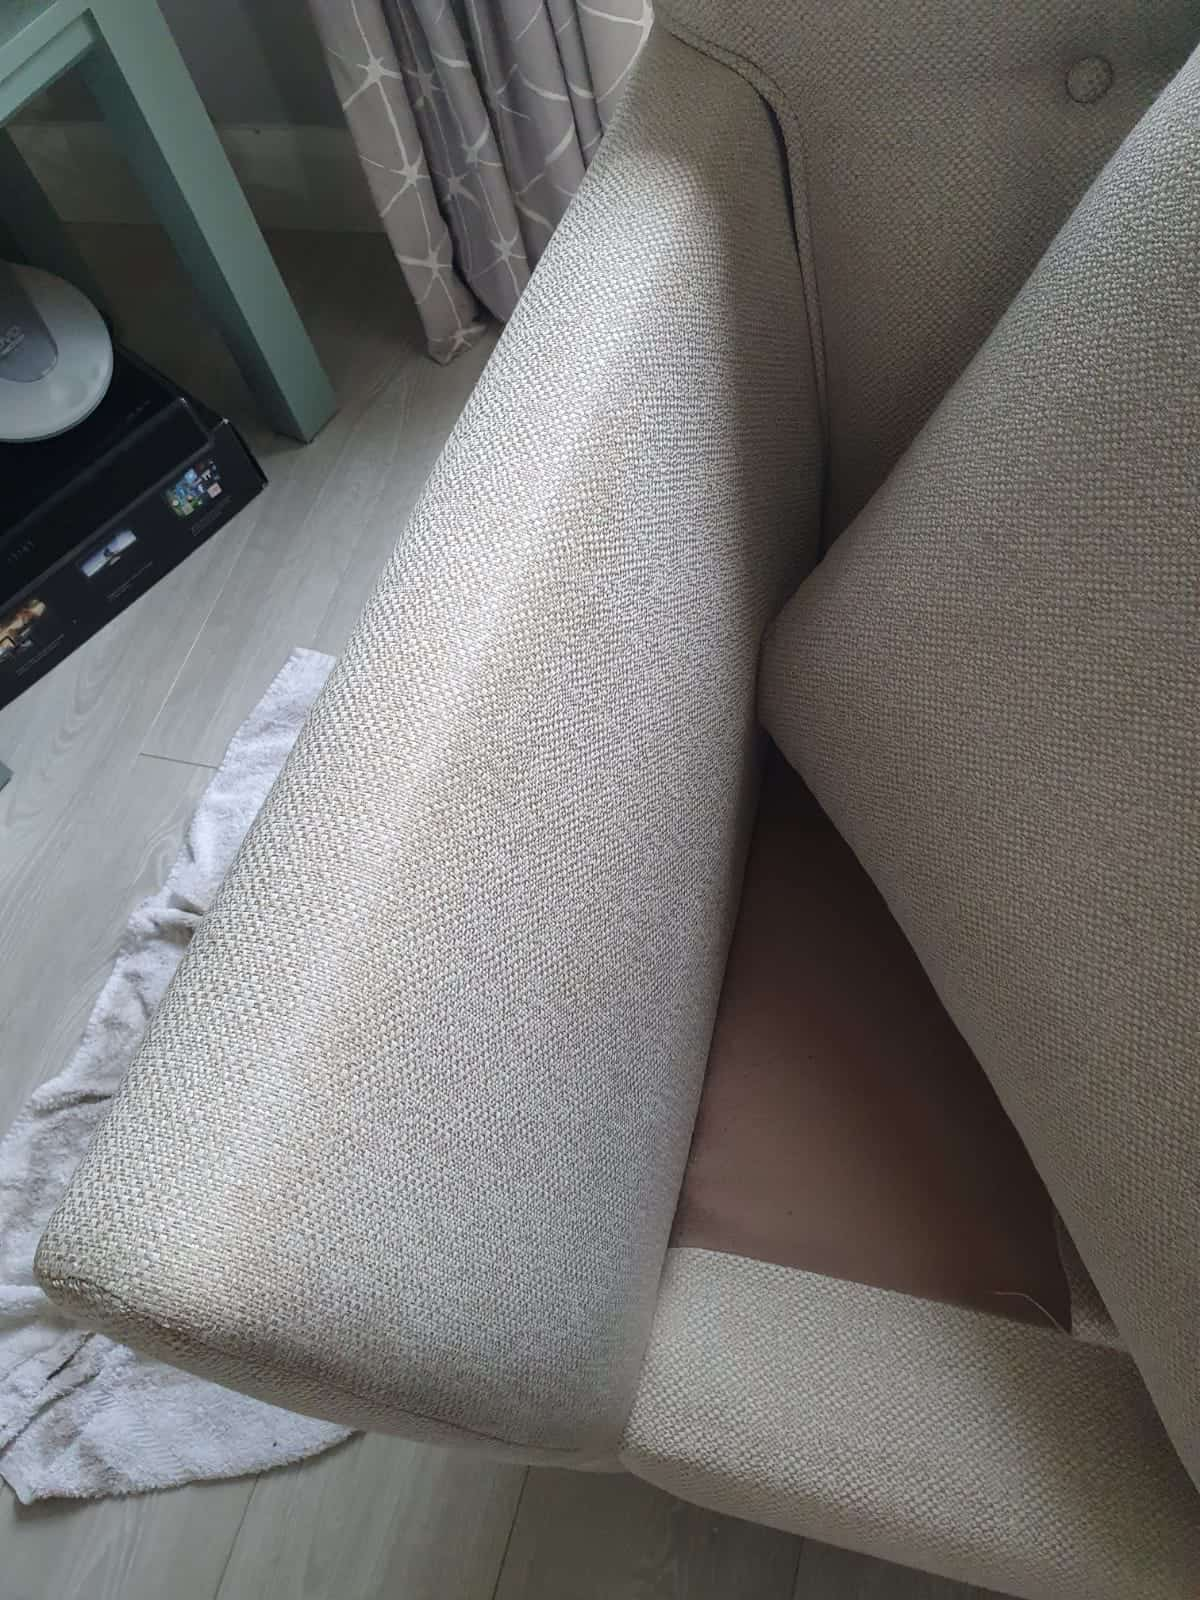 Photo of armchair which has had upholstery cleaning